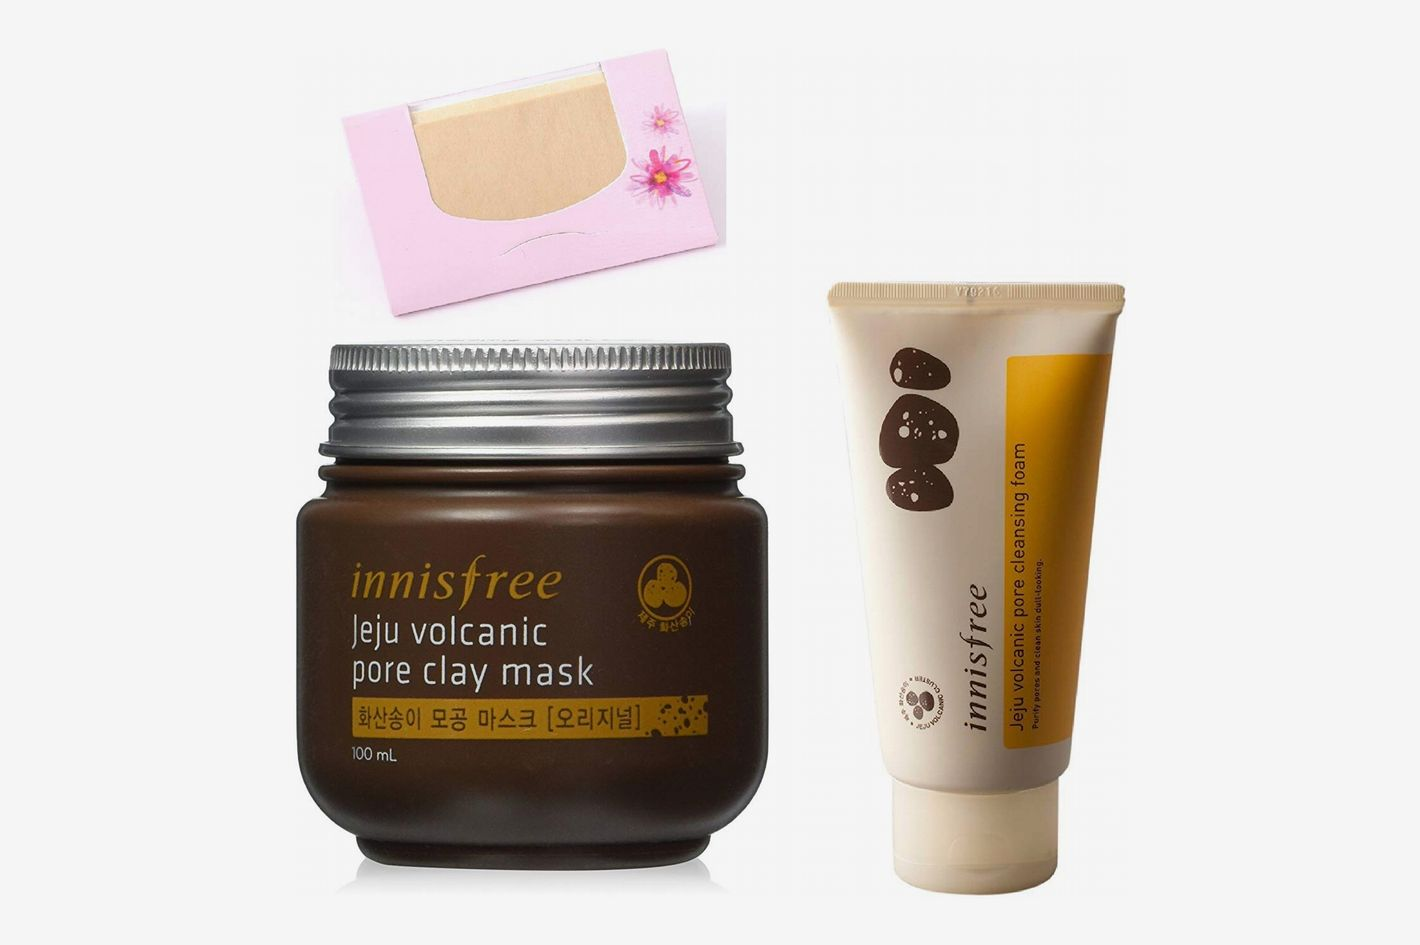 Innisfree Jeju Volcanic Pore Clay Mask + Innisfree Jeju Volcanic Pore Clay Mask + Hemp Blotting Papers Bundle